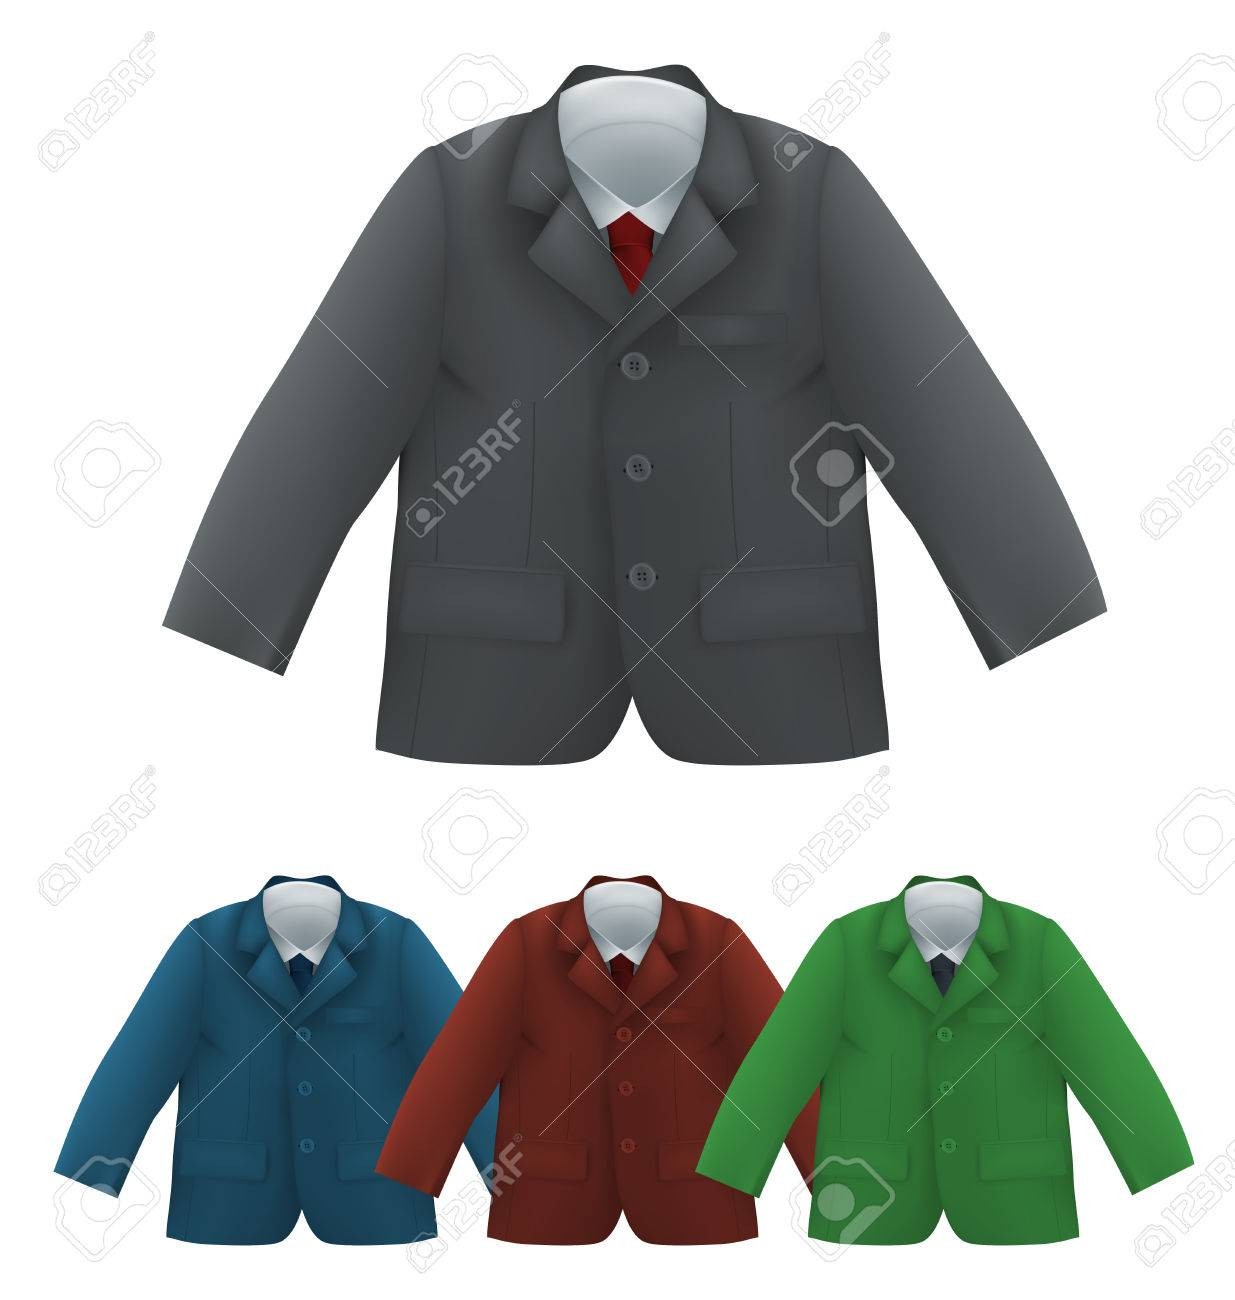 Kids jacket shirt and tie blank template isolated on white royalty kids jacket shirt and tie blank template isolated on white stock vector 80270843 maxwellsz